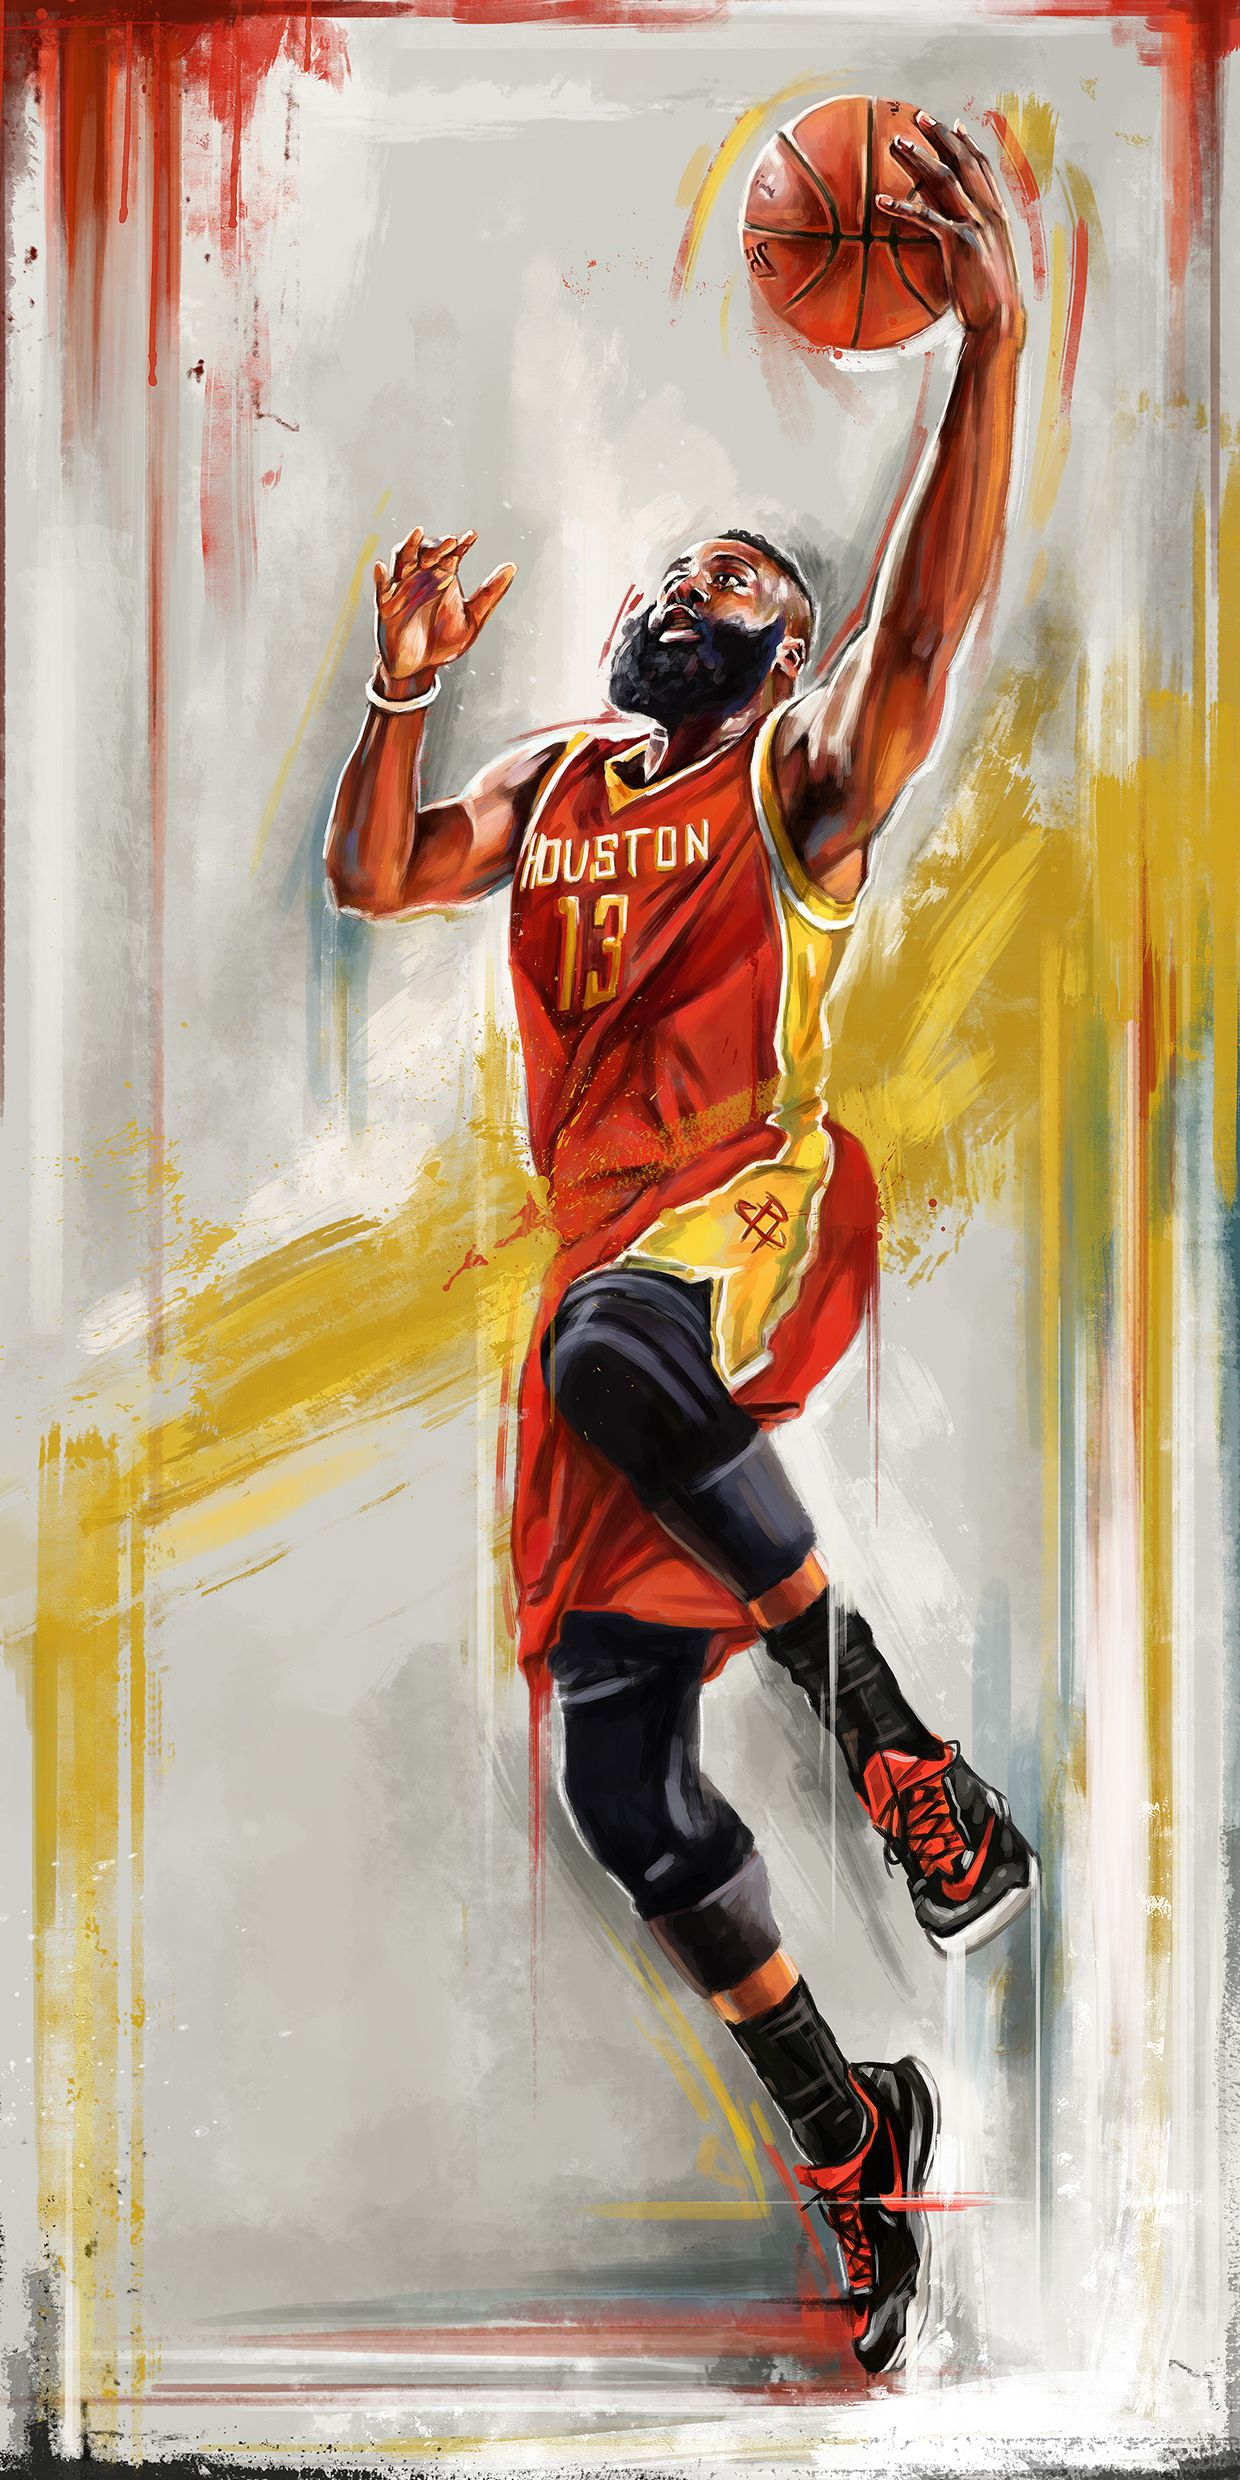 James Harden, Houston Rockets by Robert Bruno. Nba